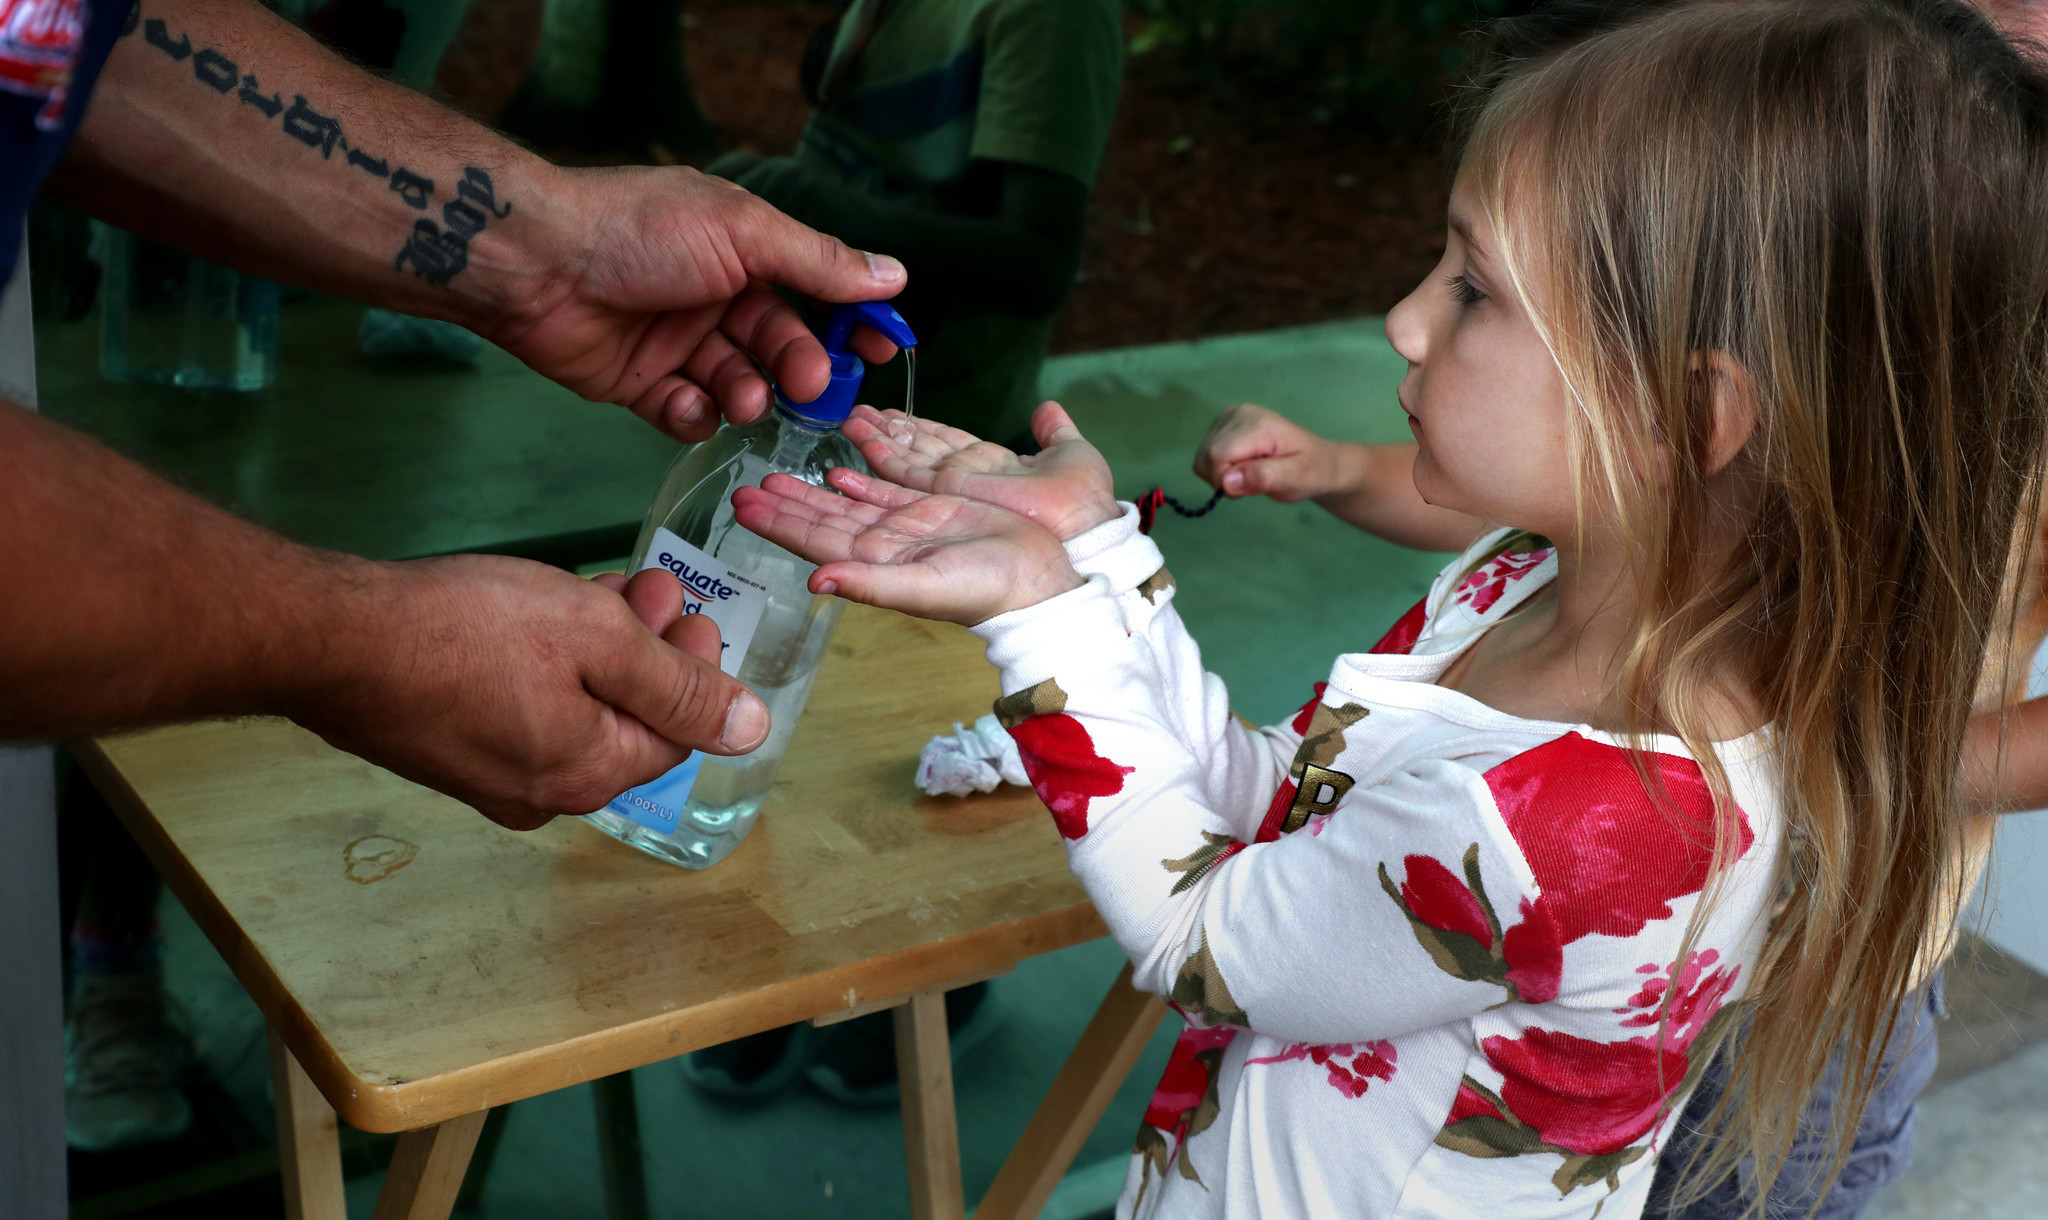 100,000 Children In US Tested Positive For Covid-19 In Last Two Weeks Of July